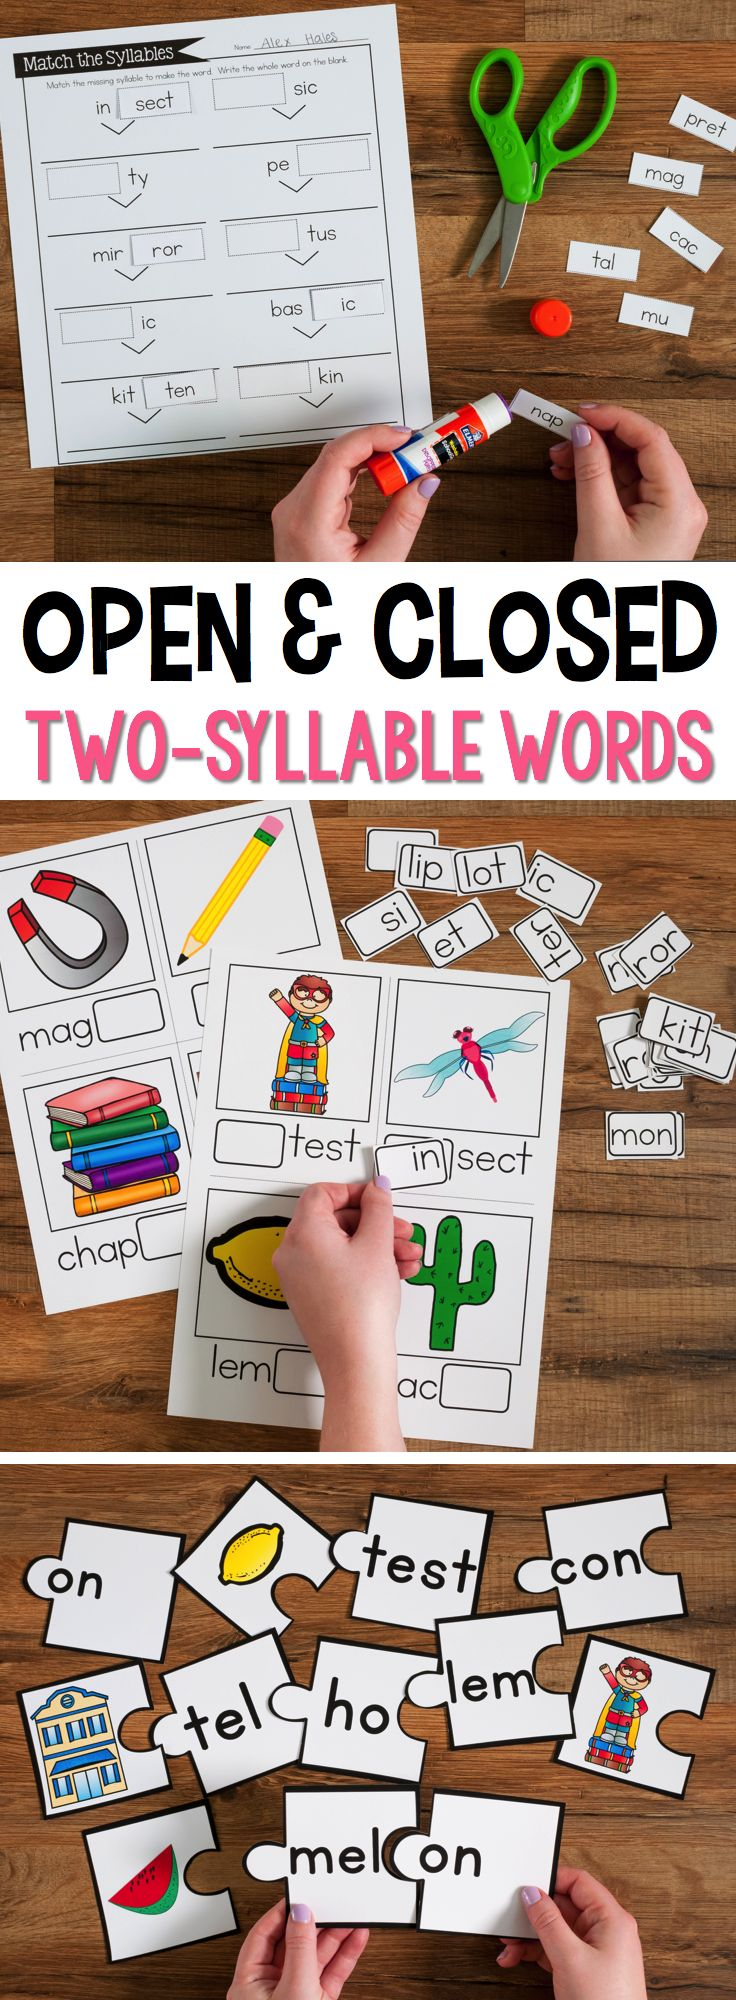 Open and Closed Syllable Practice for Two-Syllable Words has over 12 different activities and games to use during small group reading. All the games and activities focus on students reading and breaking apart two-syllable words.  This unit focuses on syllabic patterns for VCCV, VCV, VCCCV.